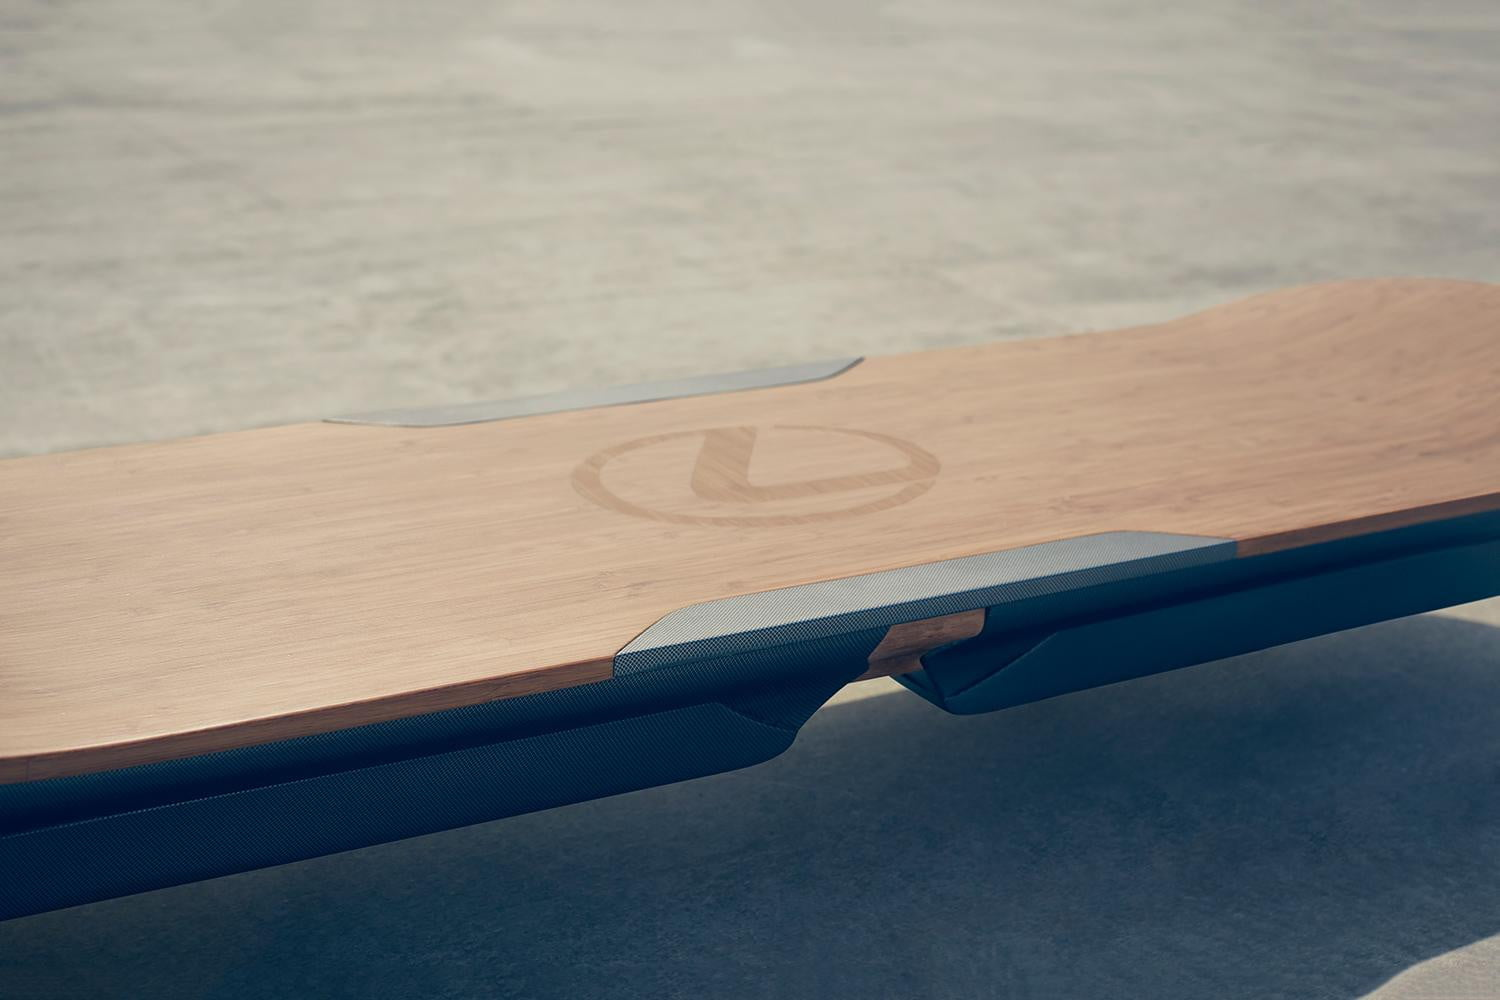 lexus hoverboard news pictures video amazing in motion slide hoeverboard 002 1500x1000